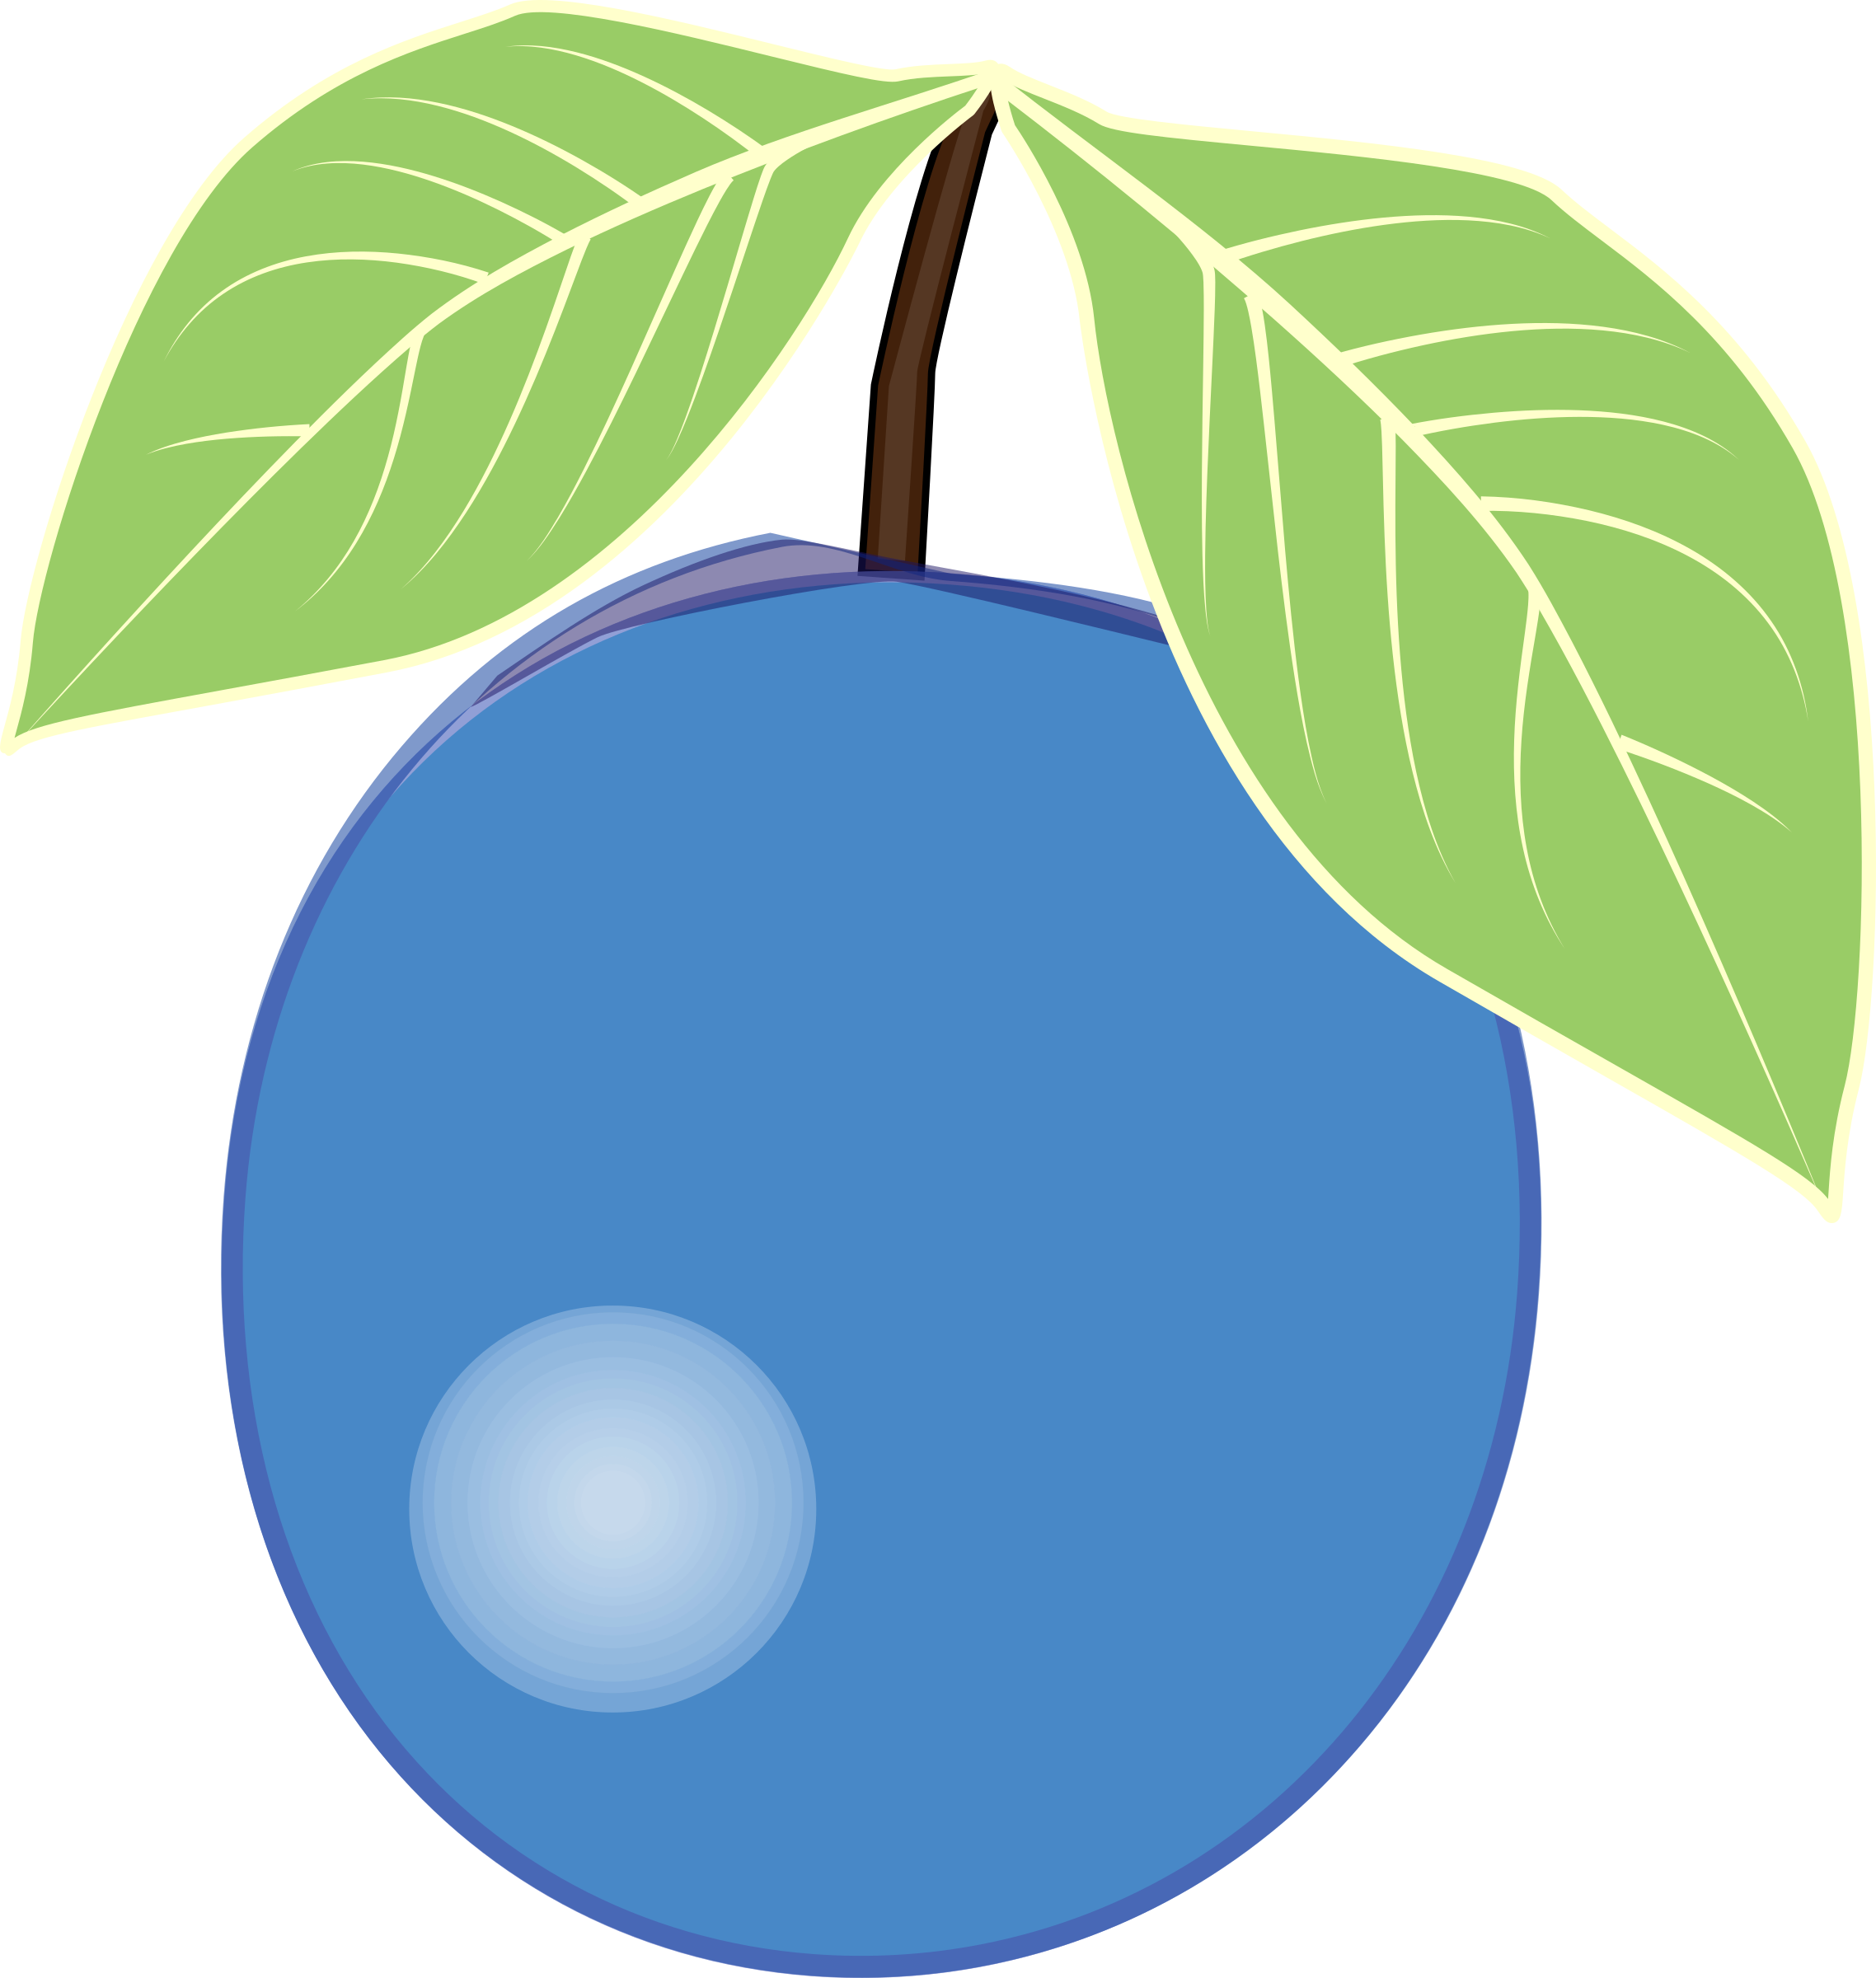 Blueberry clipart blueberry bush. Big image png